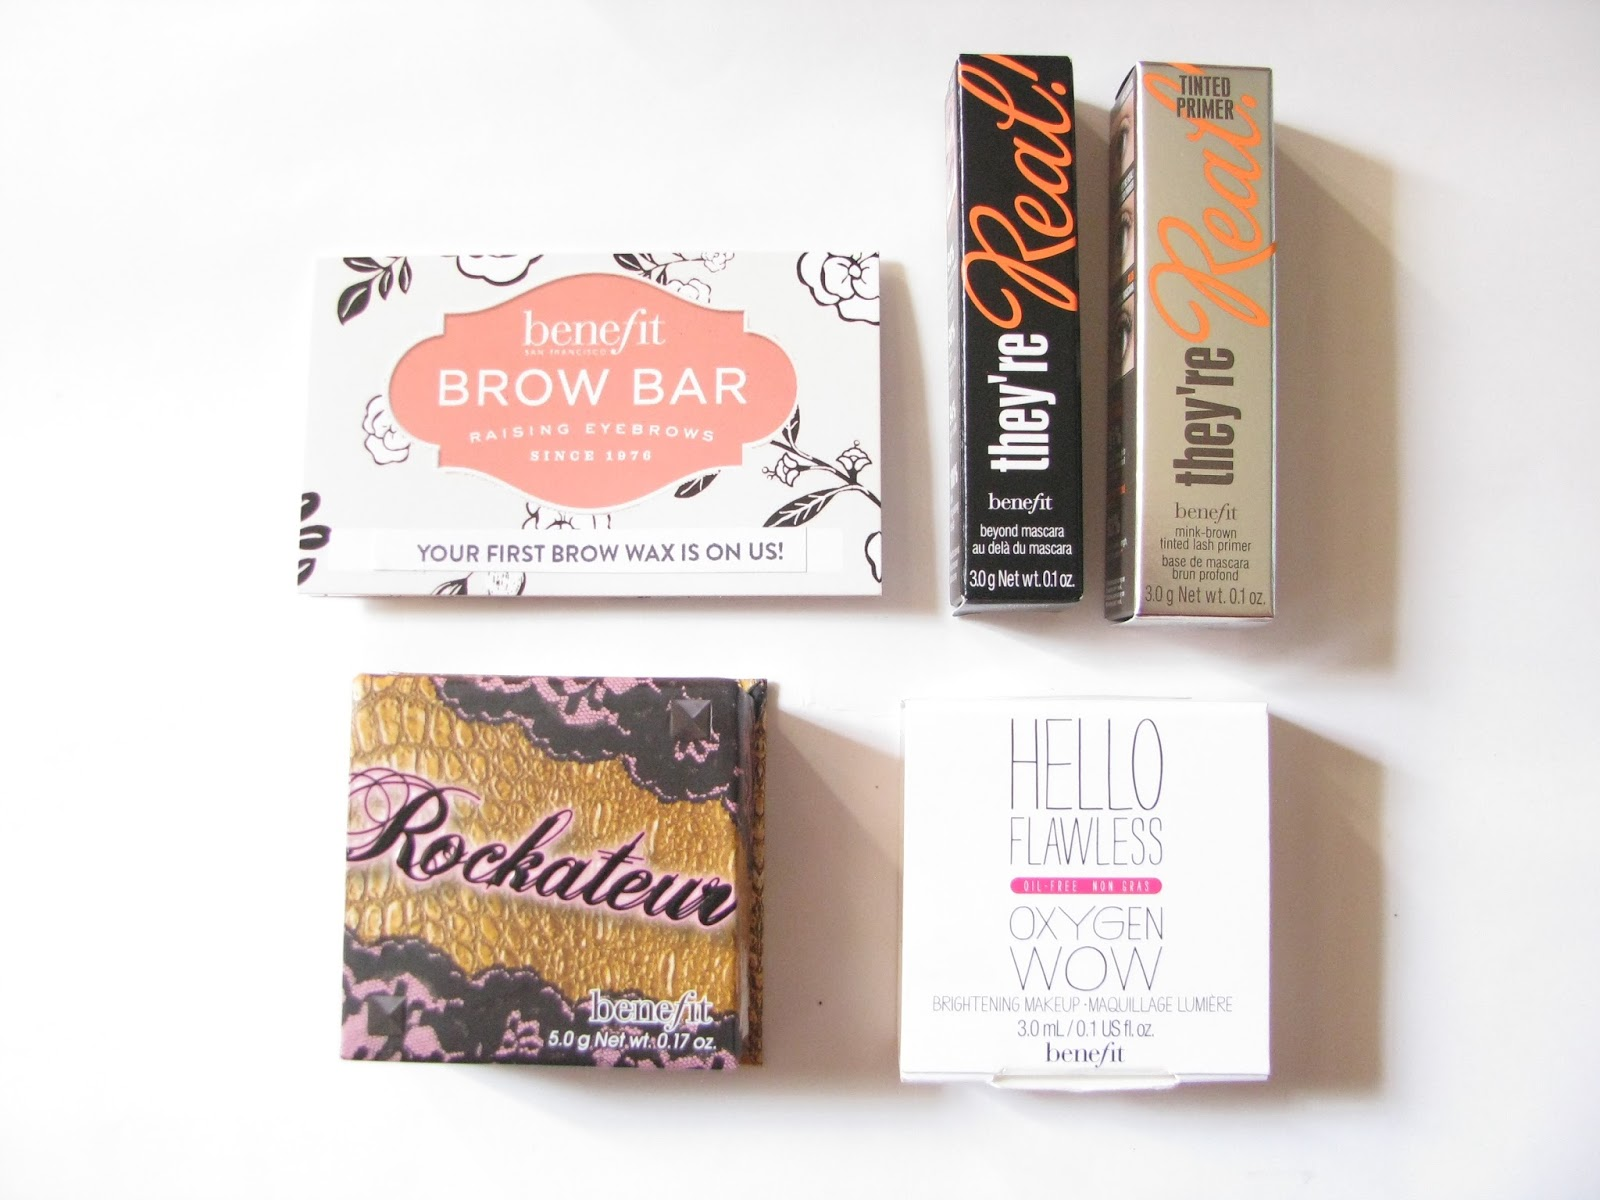 Saladbox Benefit Cosmetics March Box #benefitxsaladbox